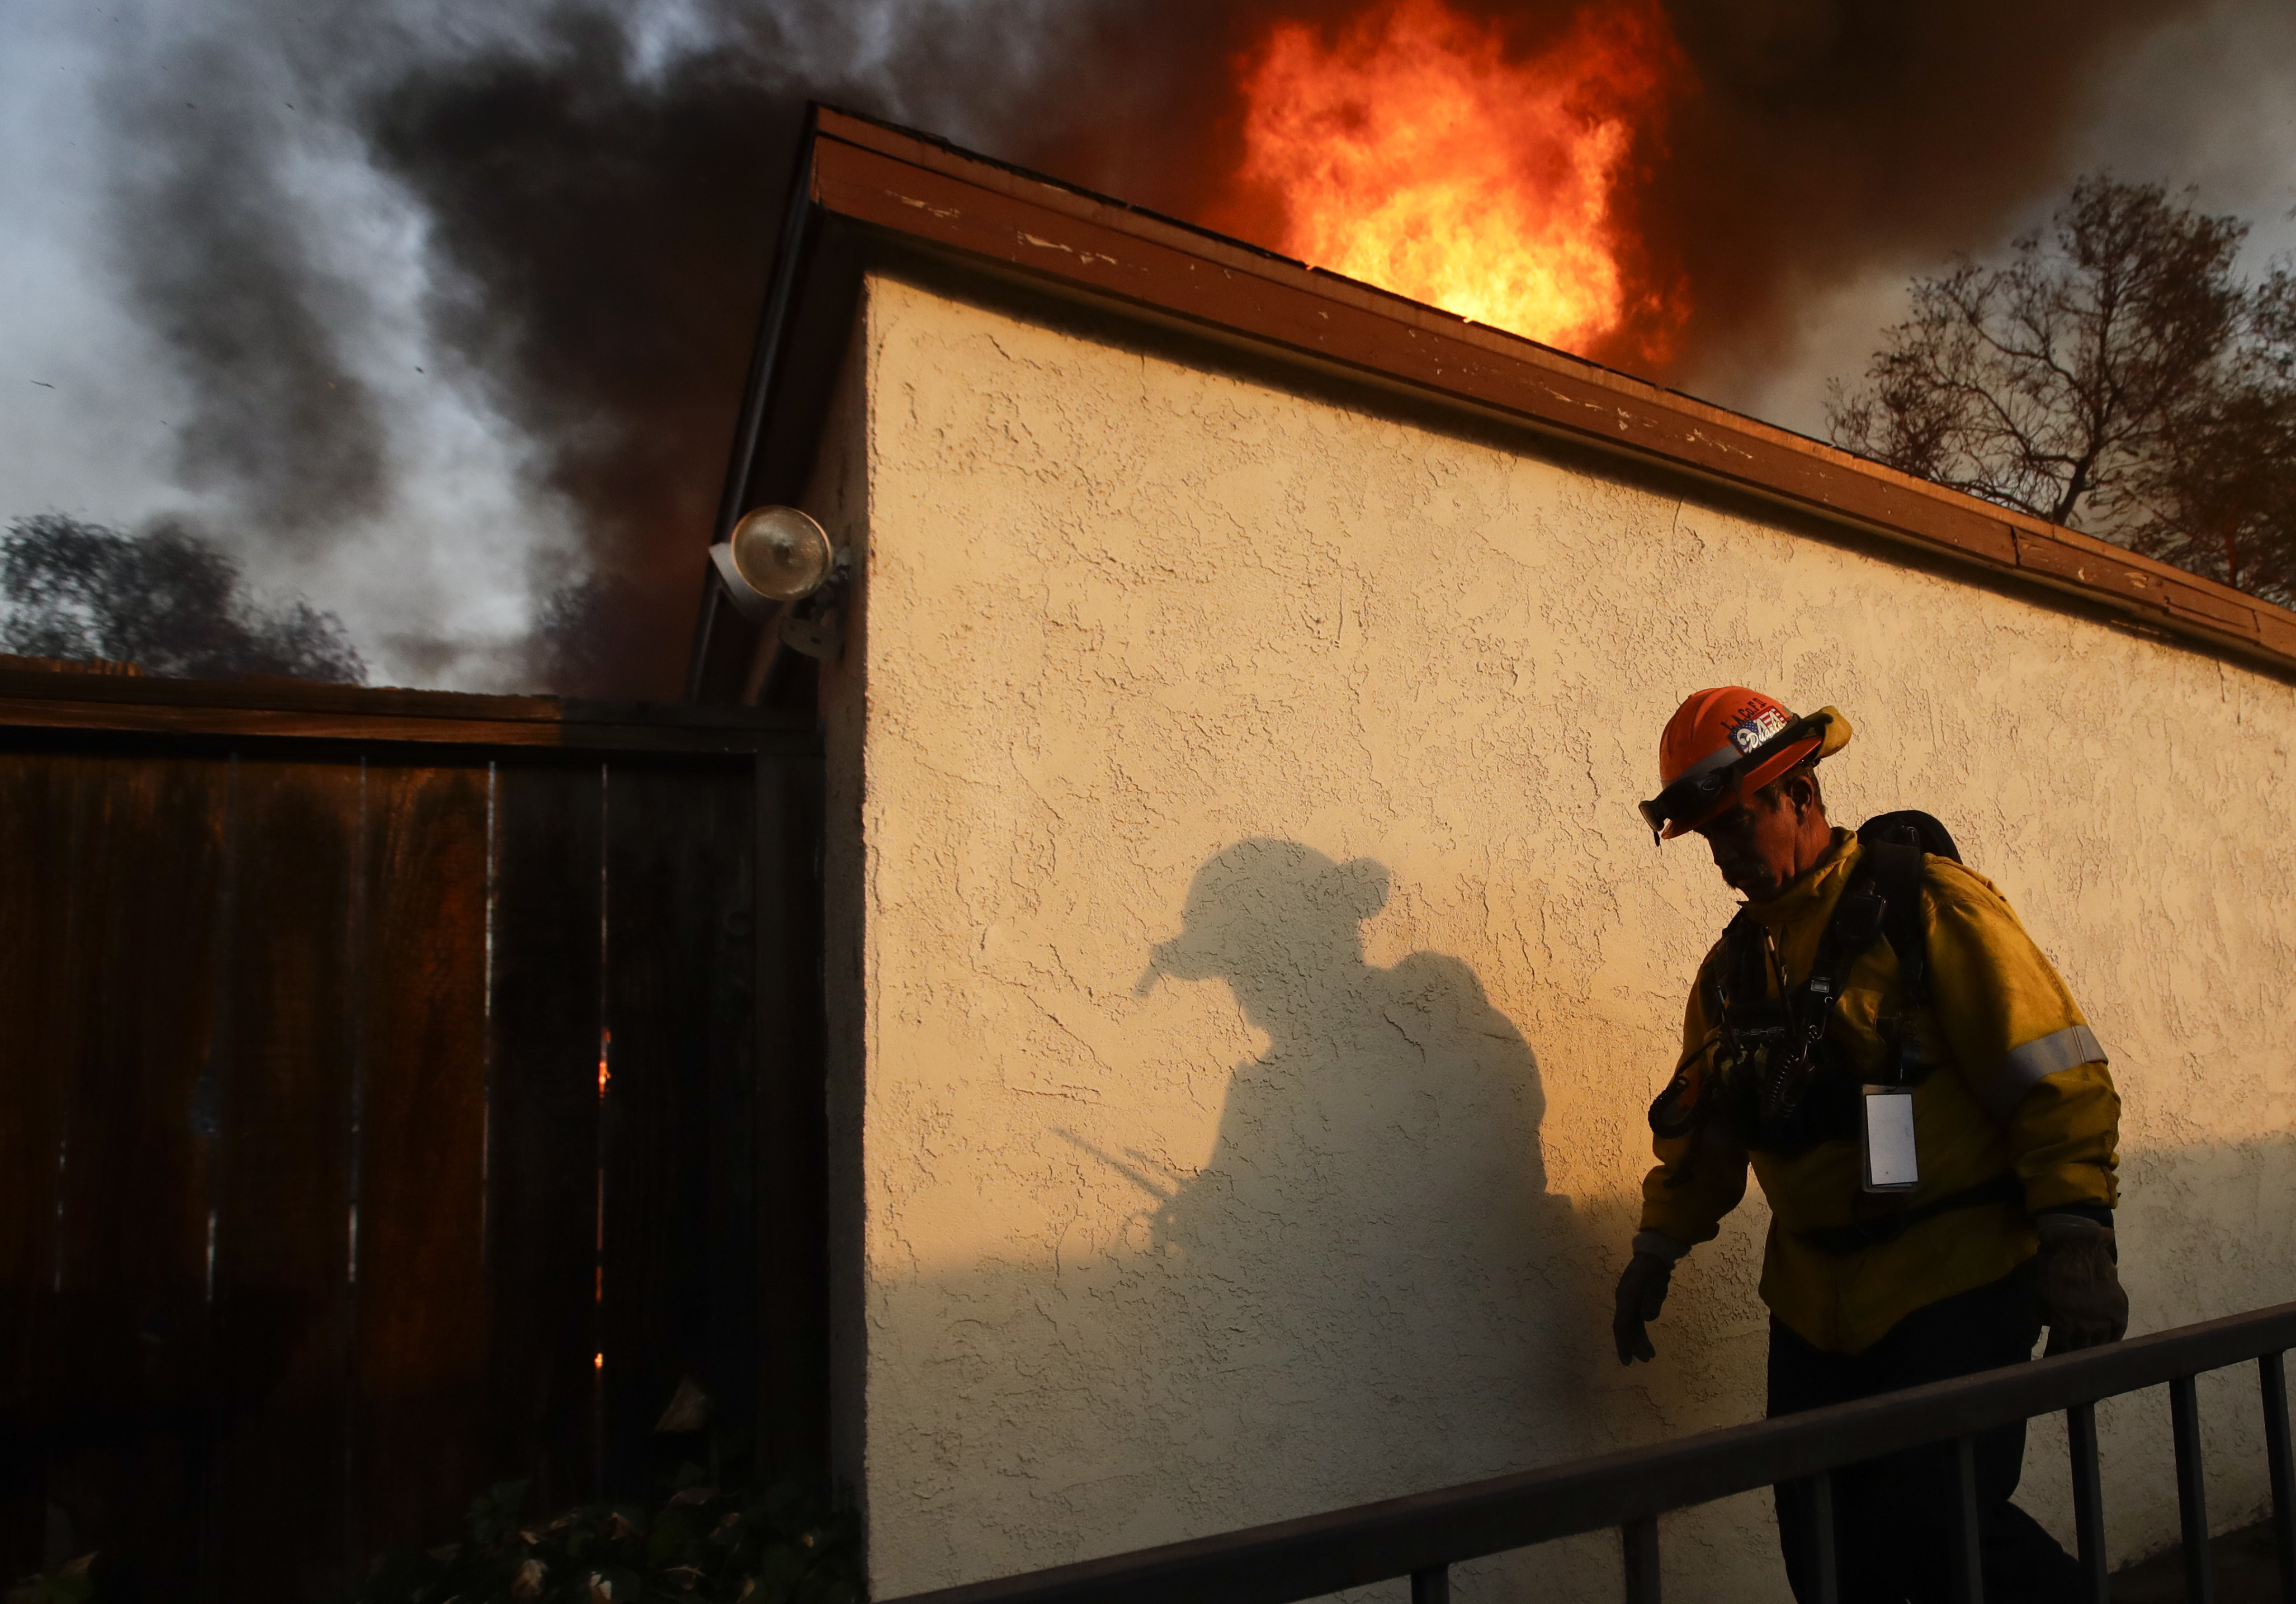 A Los Angeles County firefighter walks past burning house during a wildfire in the Lake View Terrace area of Los Angeles Tuesday, Dec. 5, 2017. Ferocious winds in Southern California have whipped up explosive wildfires, burning a psychiatric hospital and scores of other structures. Tens of thousands of people have been ordered evacuated.  (AP Photo/Chris Carlson)